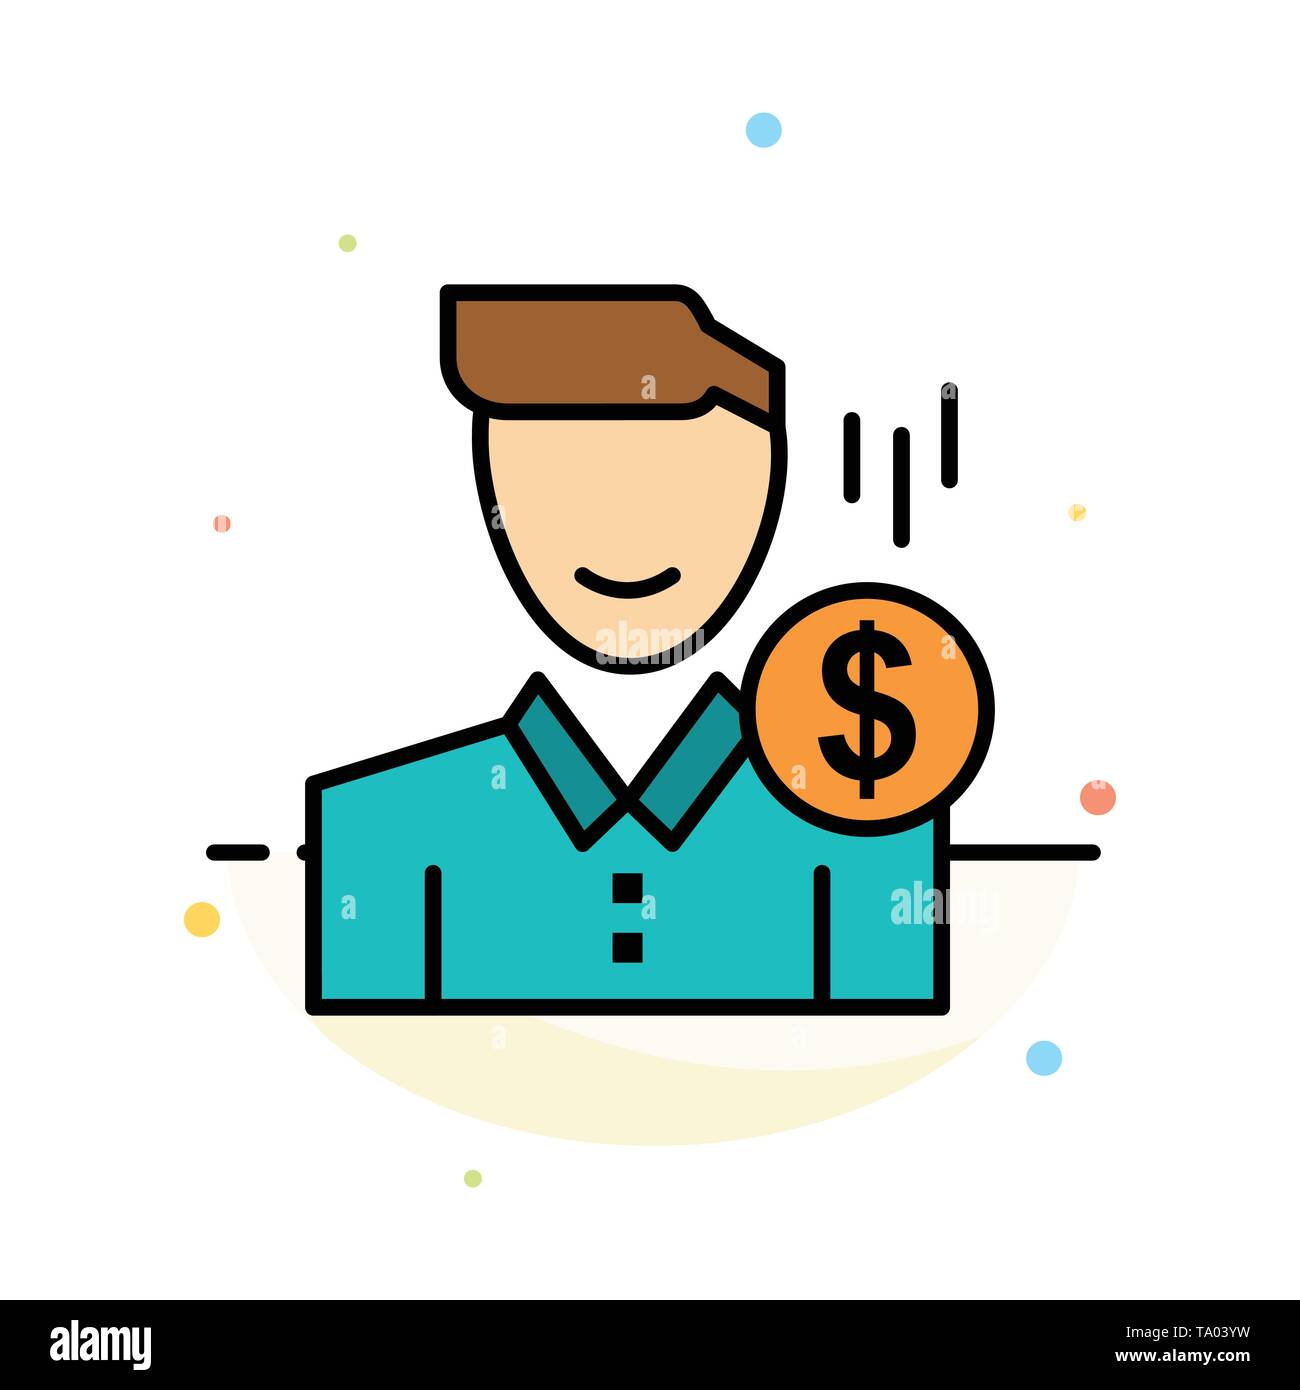 Cost, Fee, Male, Money, Payment, Salary, User Abstract Flat Color Icon Template - Stock Image